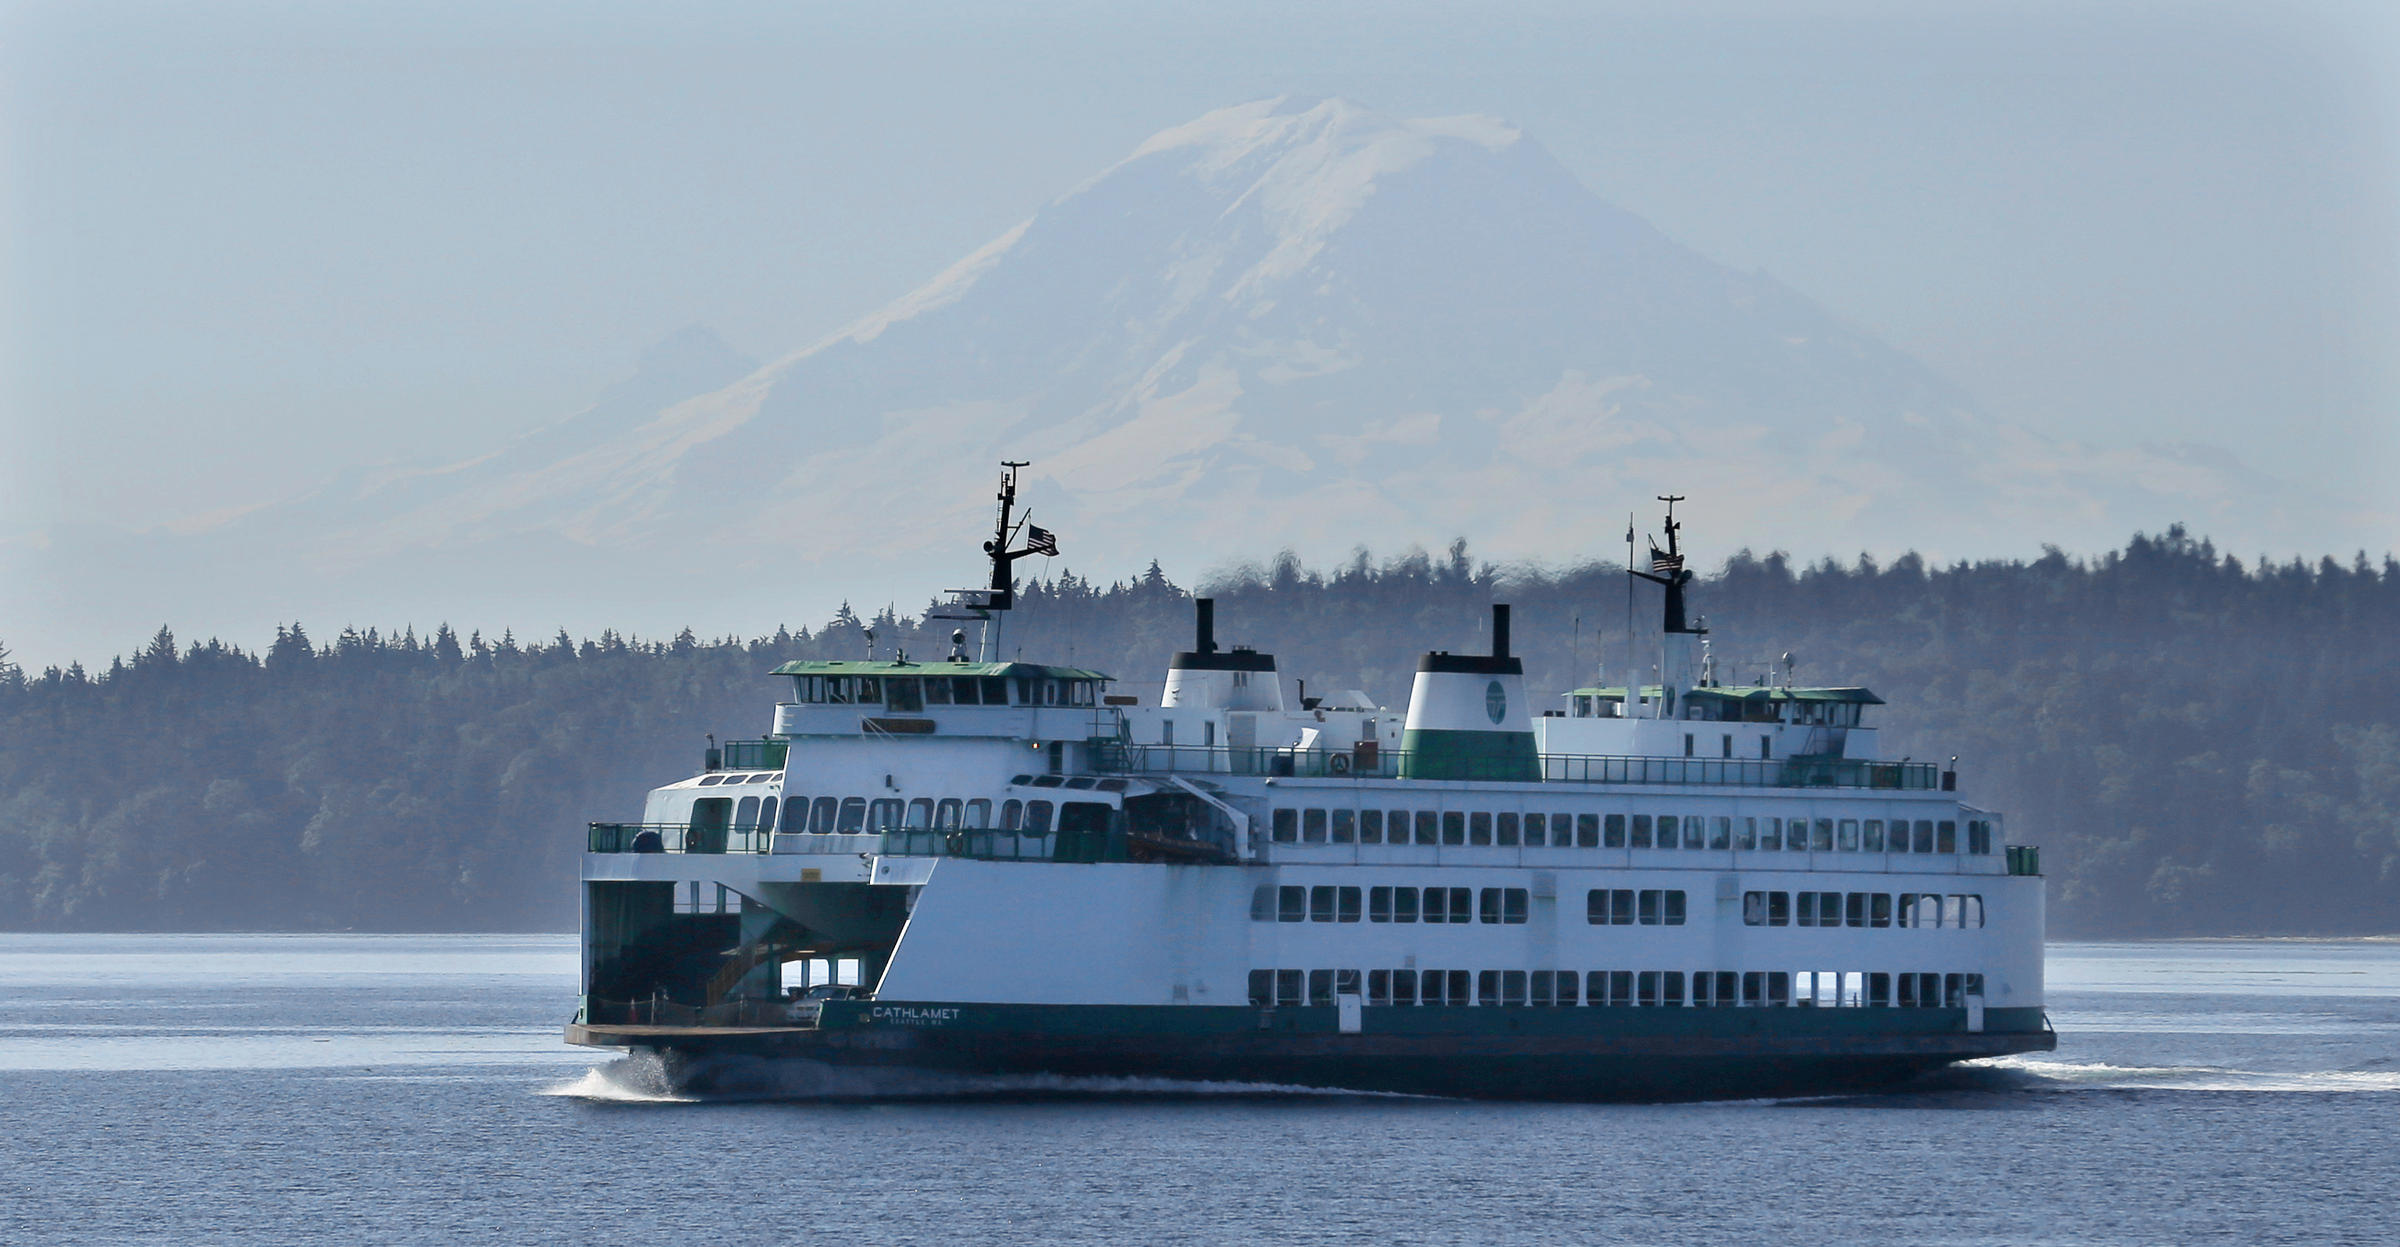 Coast guard to require more life rafts on washington ferries knkx file the washington state ferry boat cathlamet sails with mount rainier in the background wednesday july 16 2014 near seattle sciox Images